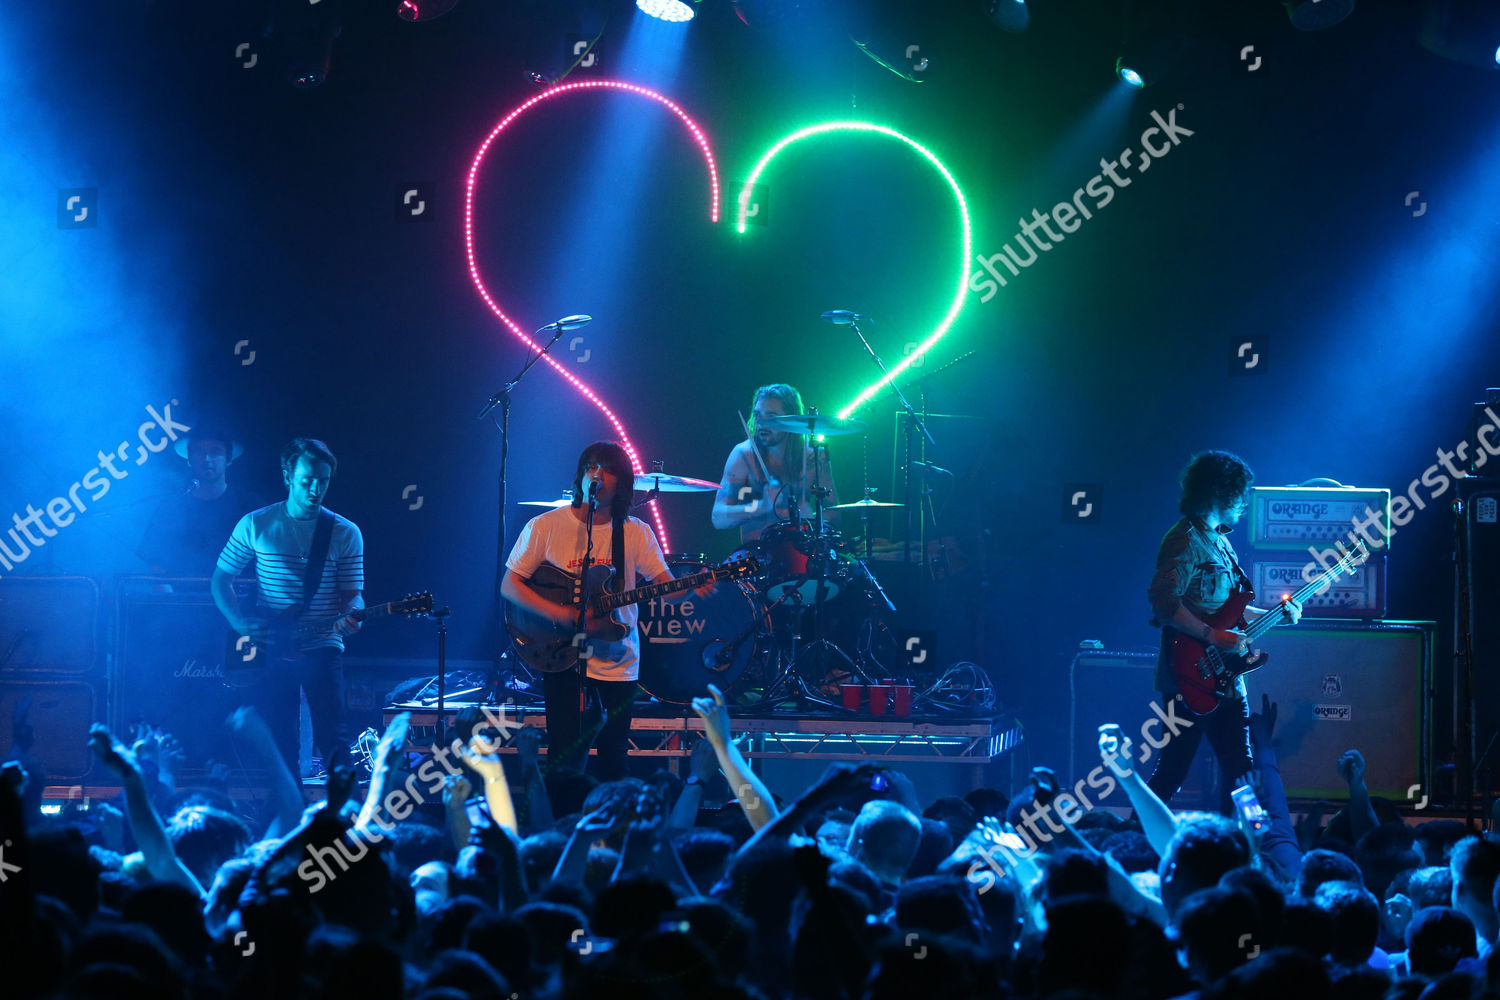 Stock photo of The View in concert at The Glasgow Barrowland Ballroom, Scotland, UK - 04 May 2017